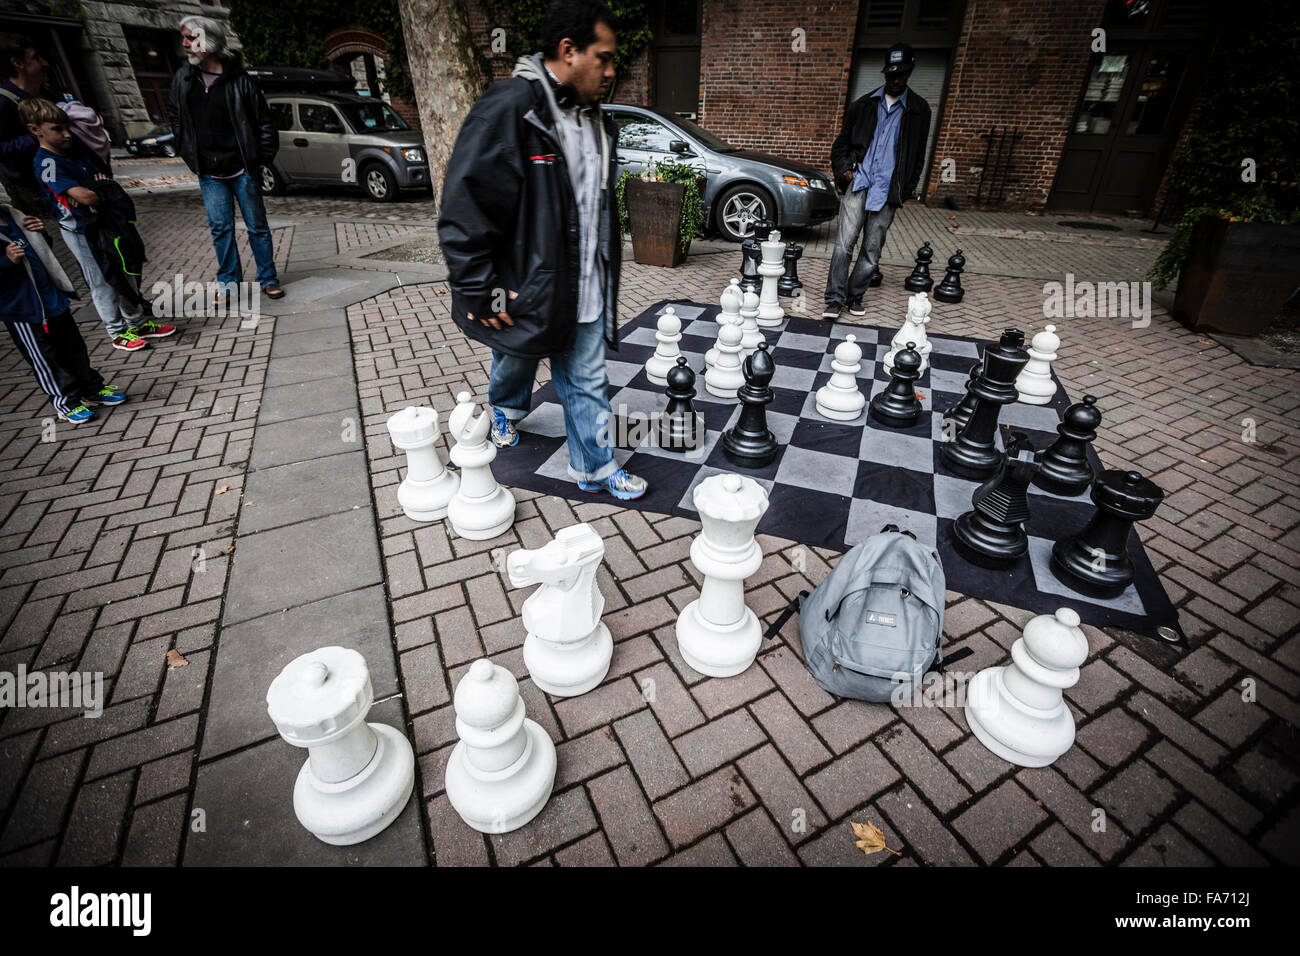 Men playing to an outdoor chess game, Seattle, Washington State - Stock Image